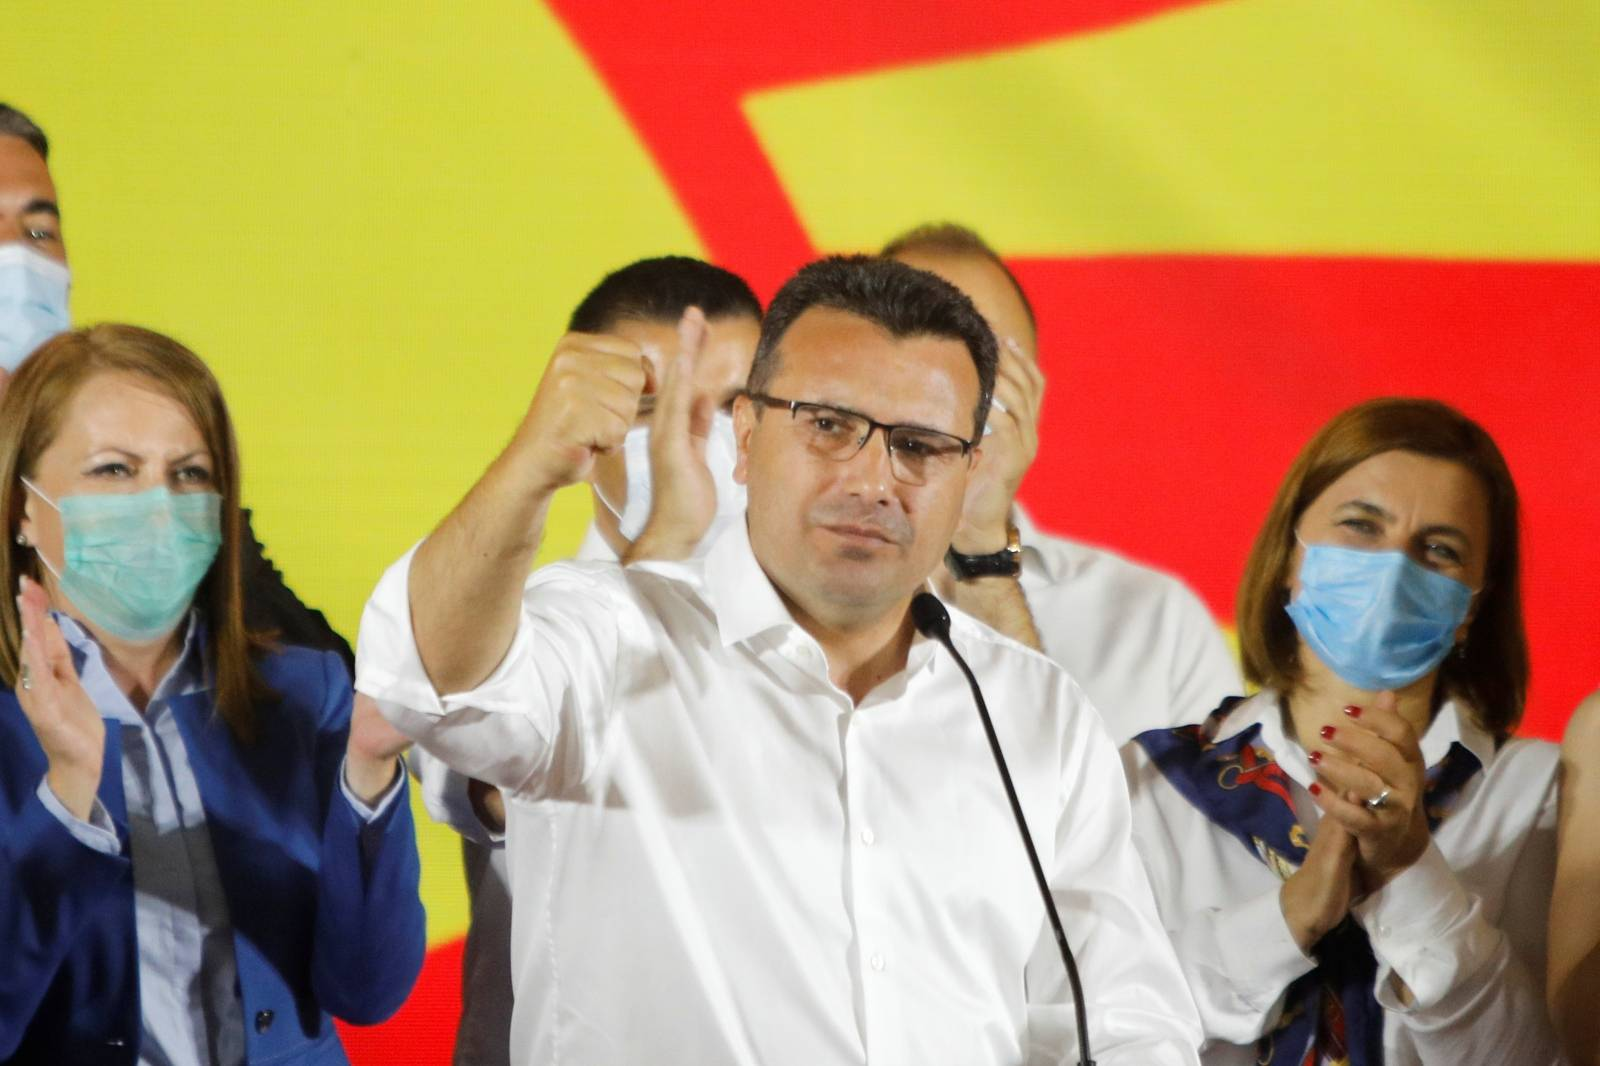 Macedonian Former Prime Minister and leader of the ruling SDSM party Zoran Zaev celebrates his victory in a parliamentary election in Skopje